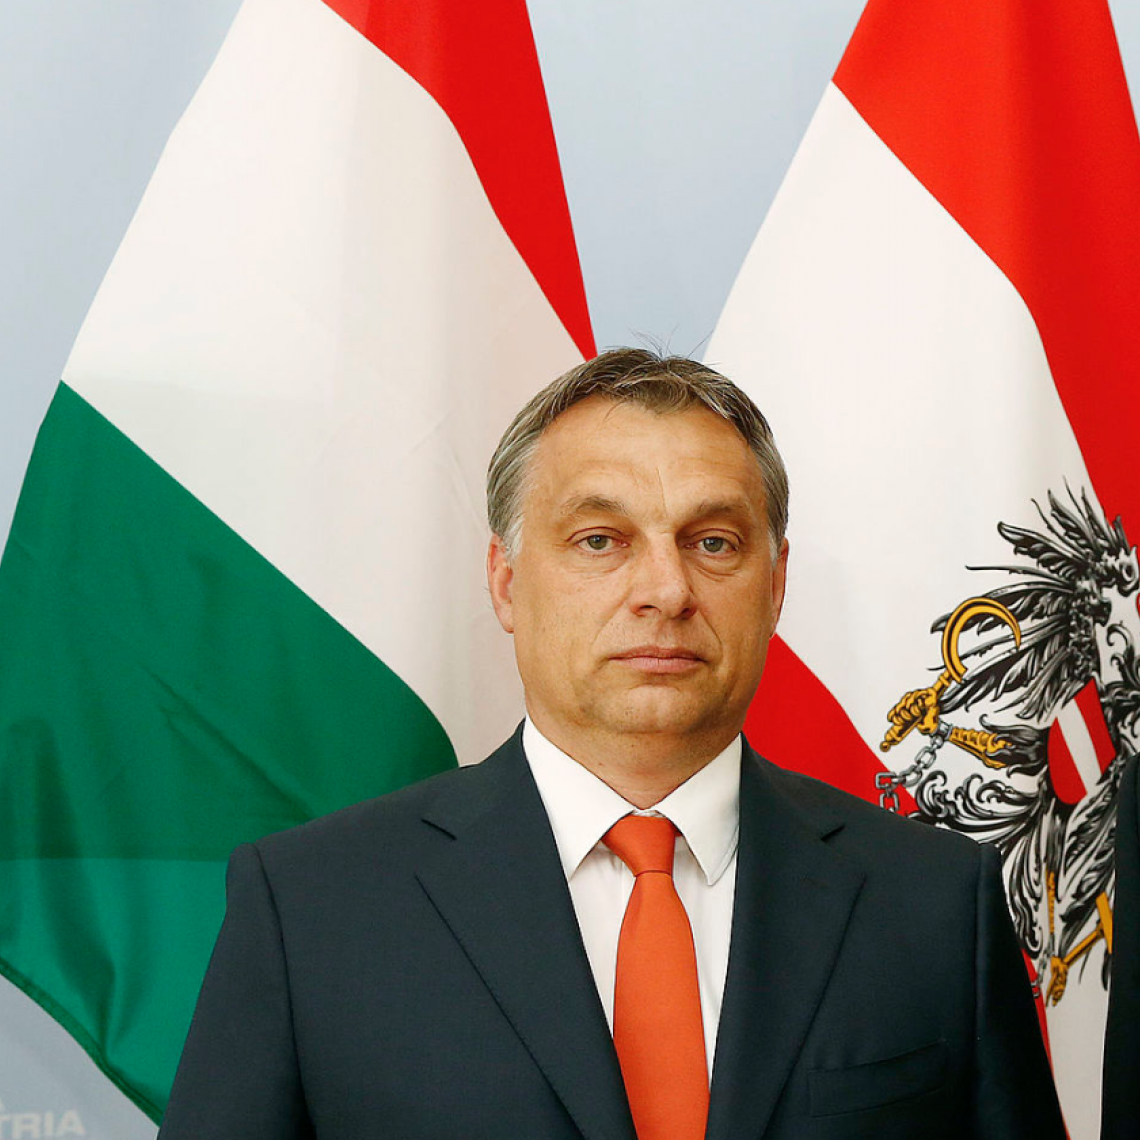 orban.png